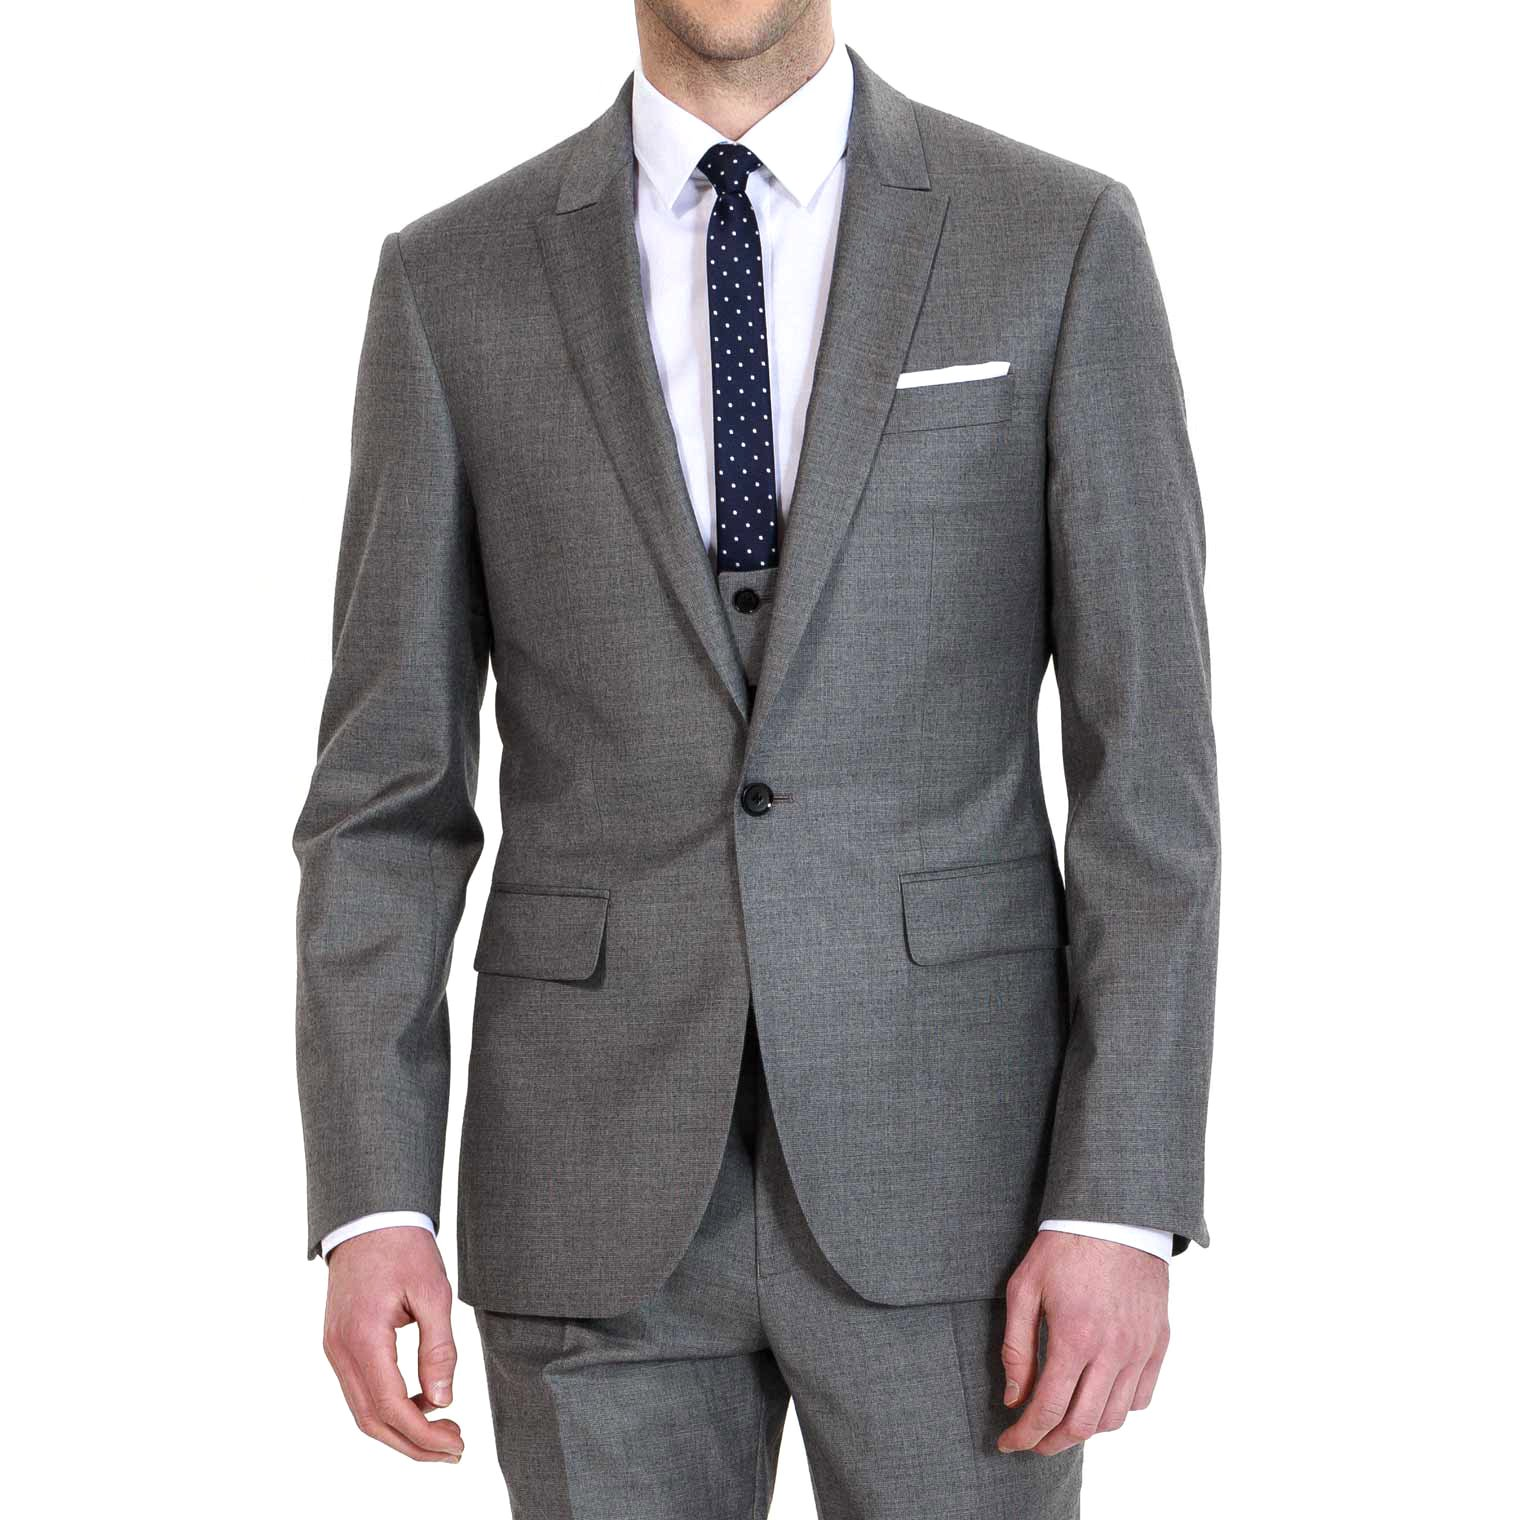 HBDesign Mens 3 Piece 1 Button Notch Lapel Slim Trim Fit Business Suite Grey 44R